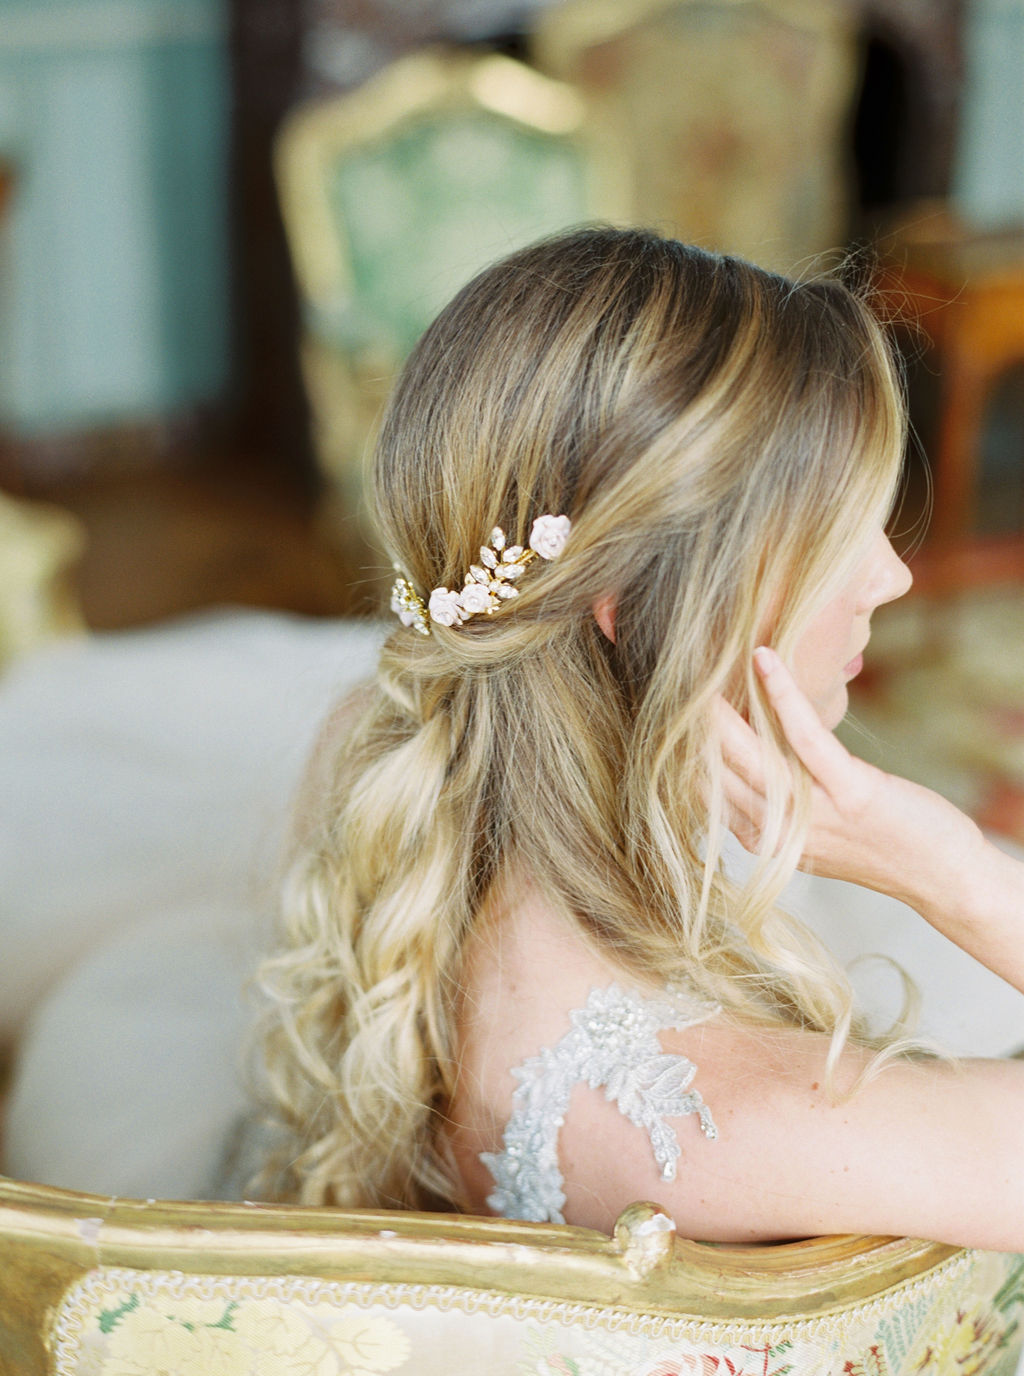 travellur_photoshoot__elegance_Jardin_de_Chateau_de_Villette_bridal_hair_accessories_Lindsay_Marie_design_wedding_paris.jpg